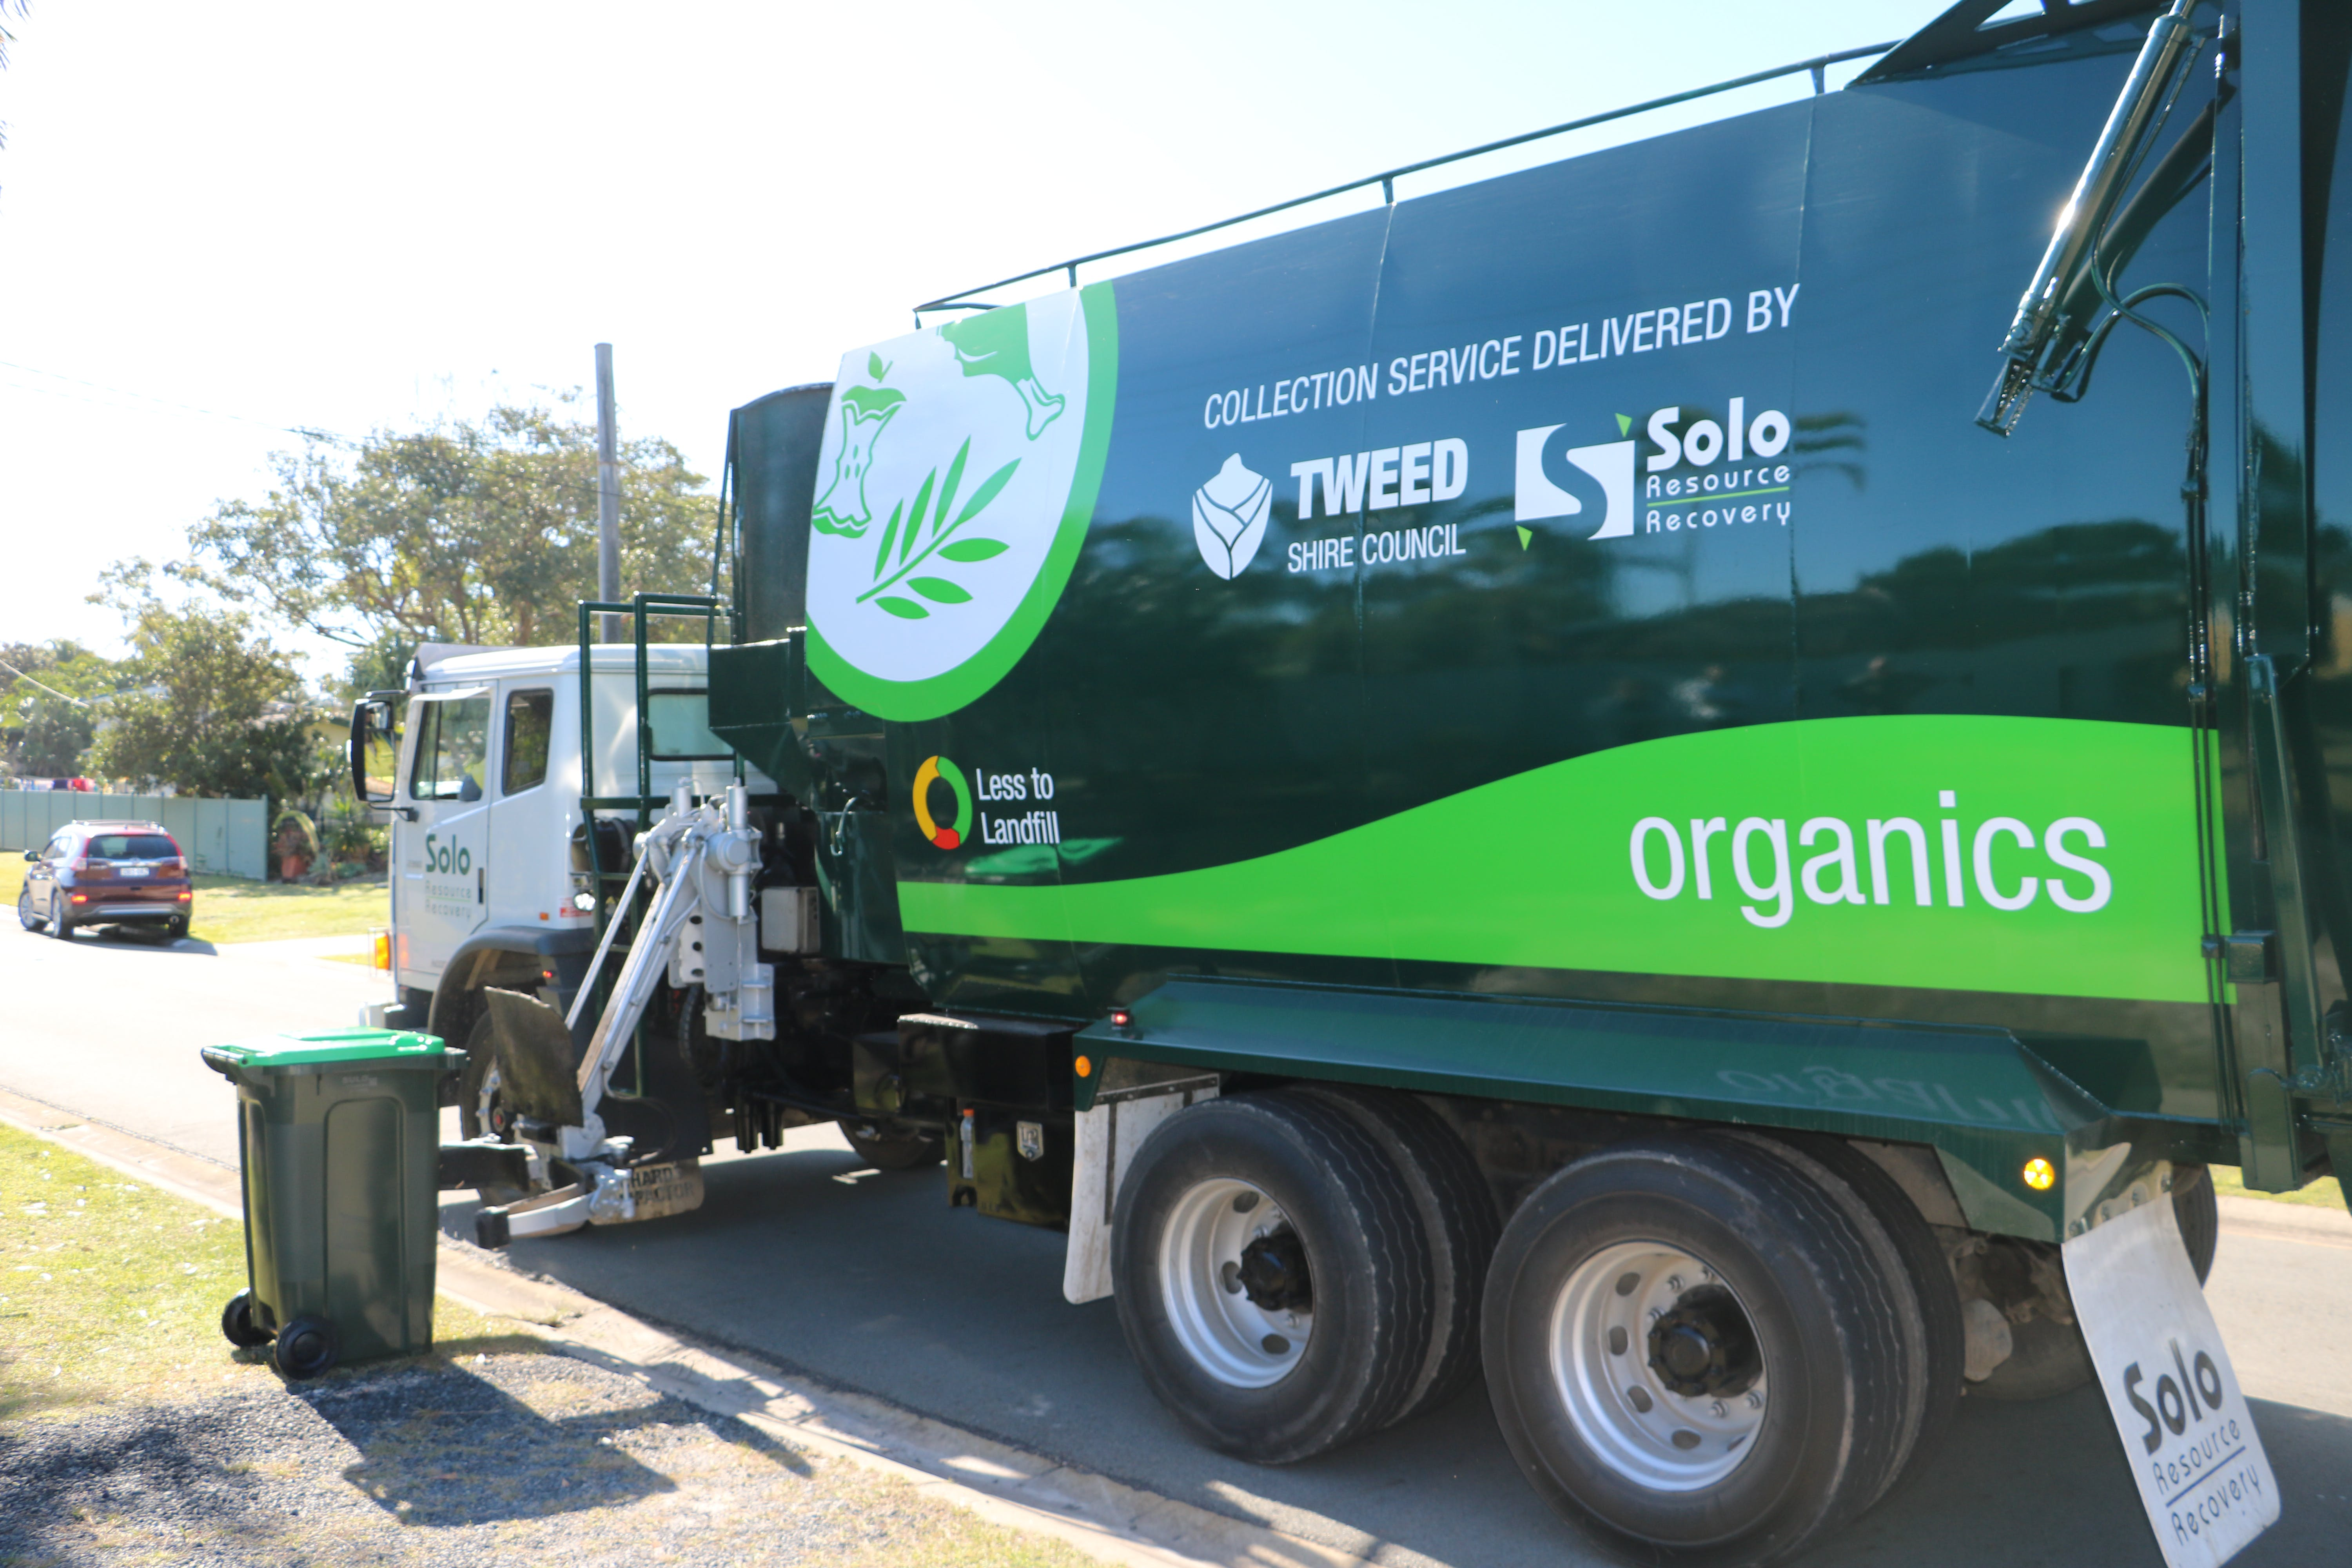 Green bin collection truck  - food scraps and garden waste are collected and reused for compost, diverting them from landfill